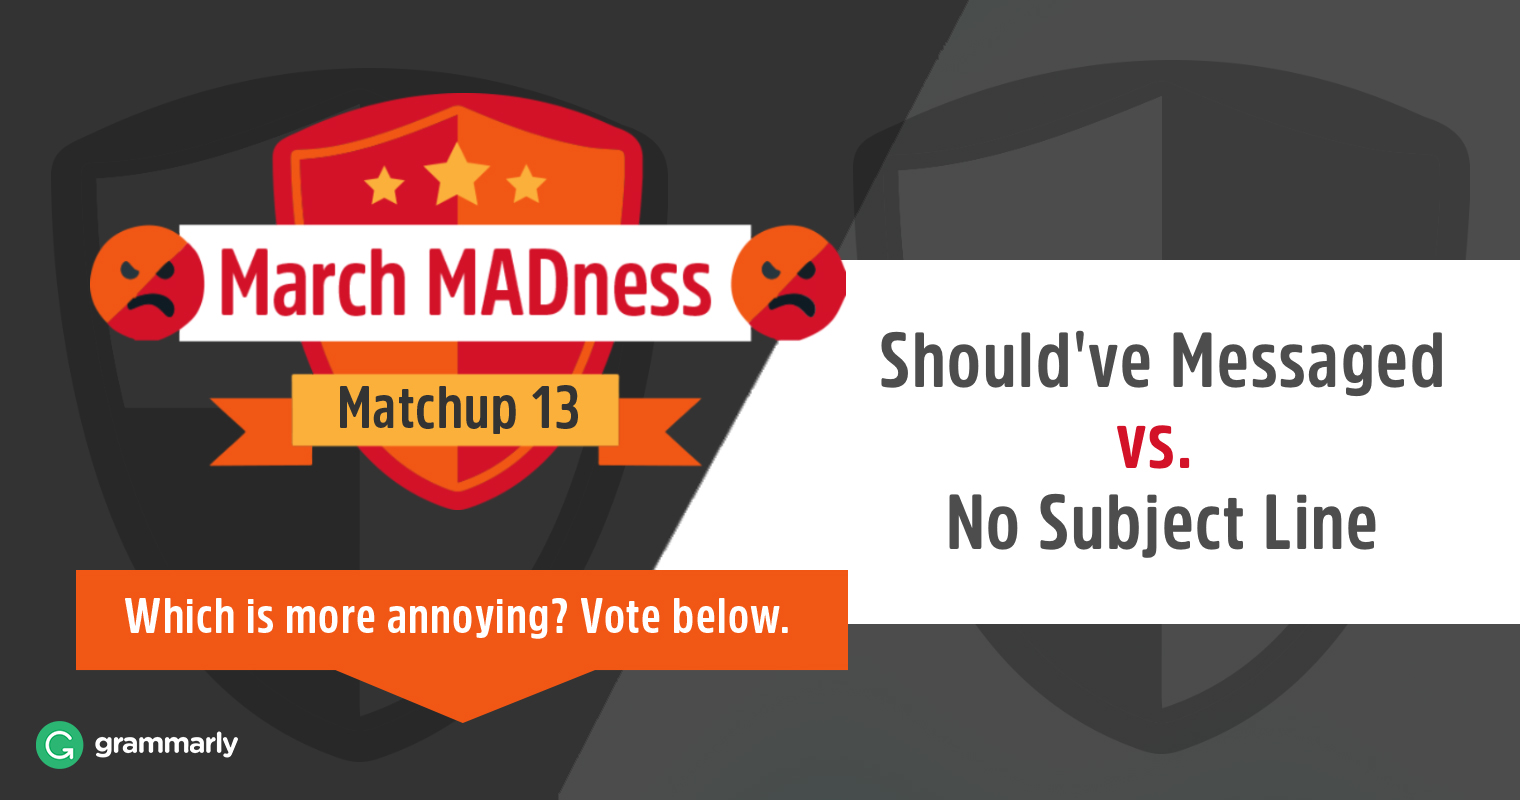 March MADness: Should've Messaged vs. No Subject Line